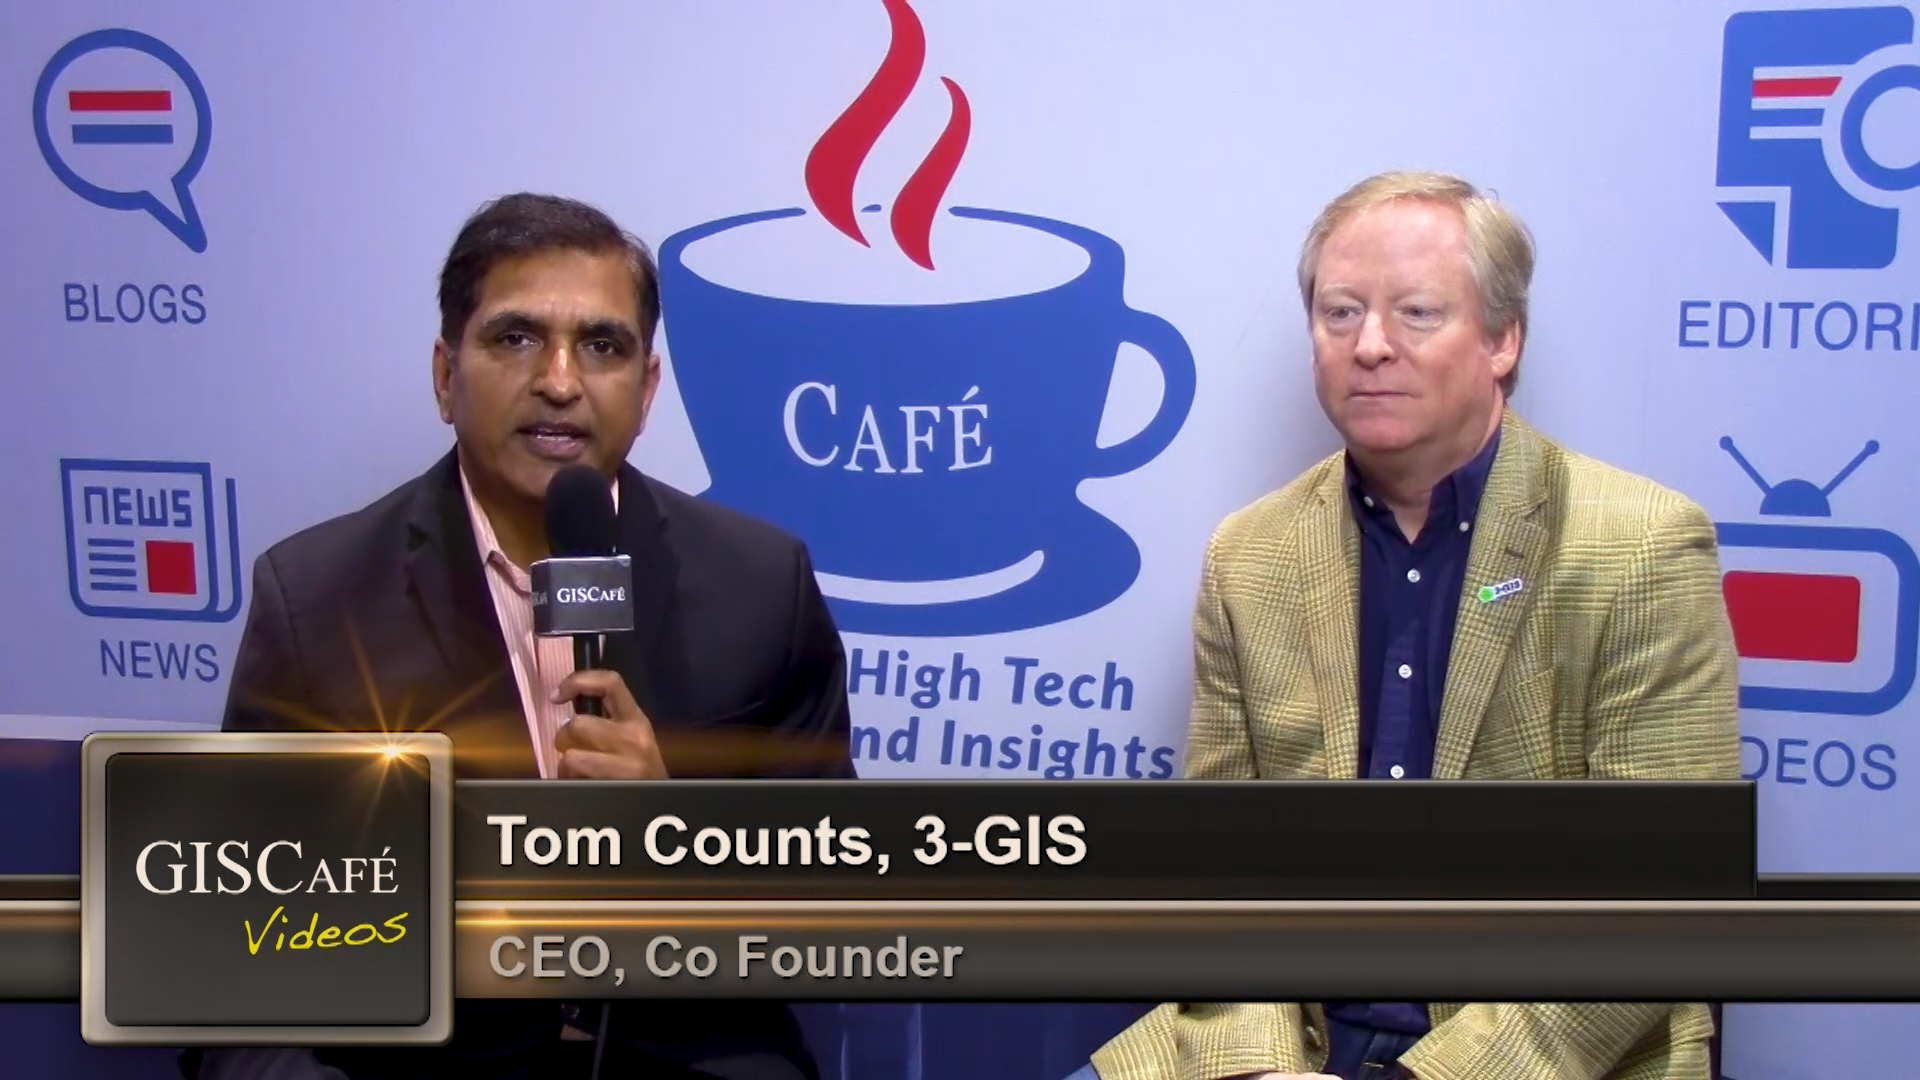 3-GIS CEO Tom Counts